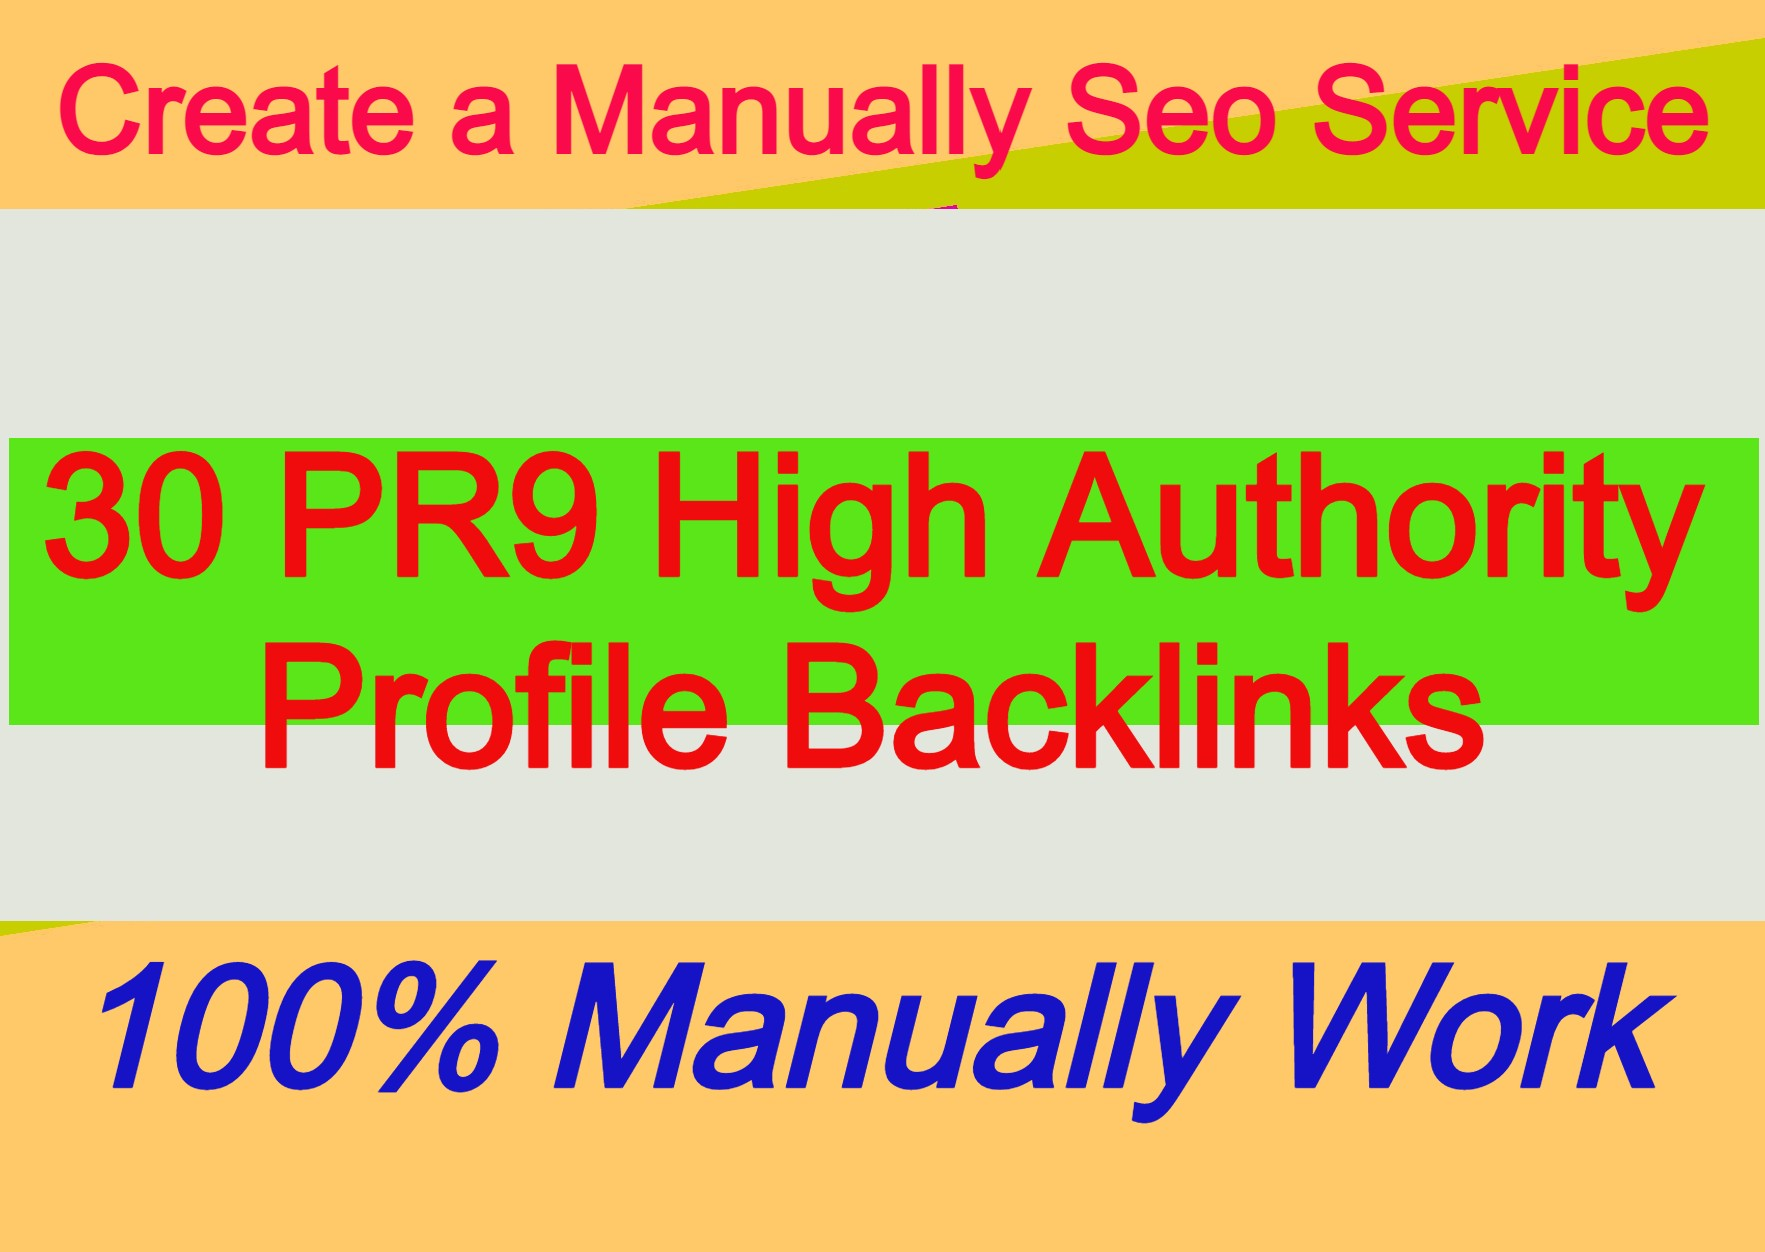 30 PR9 High Authority Backlinks From 30 HQ Profile links